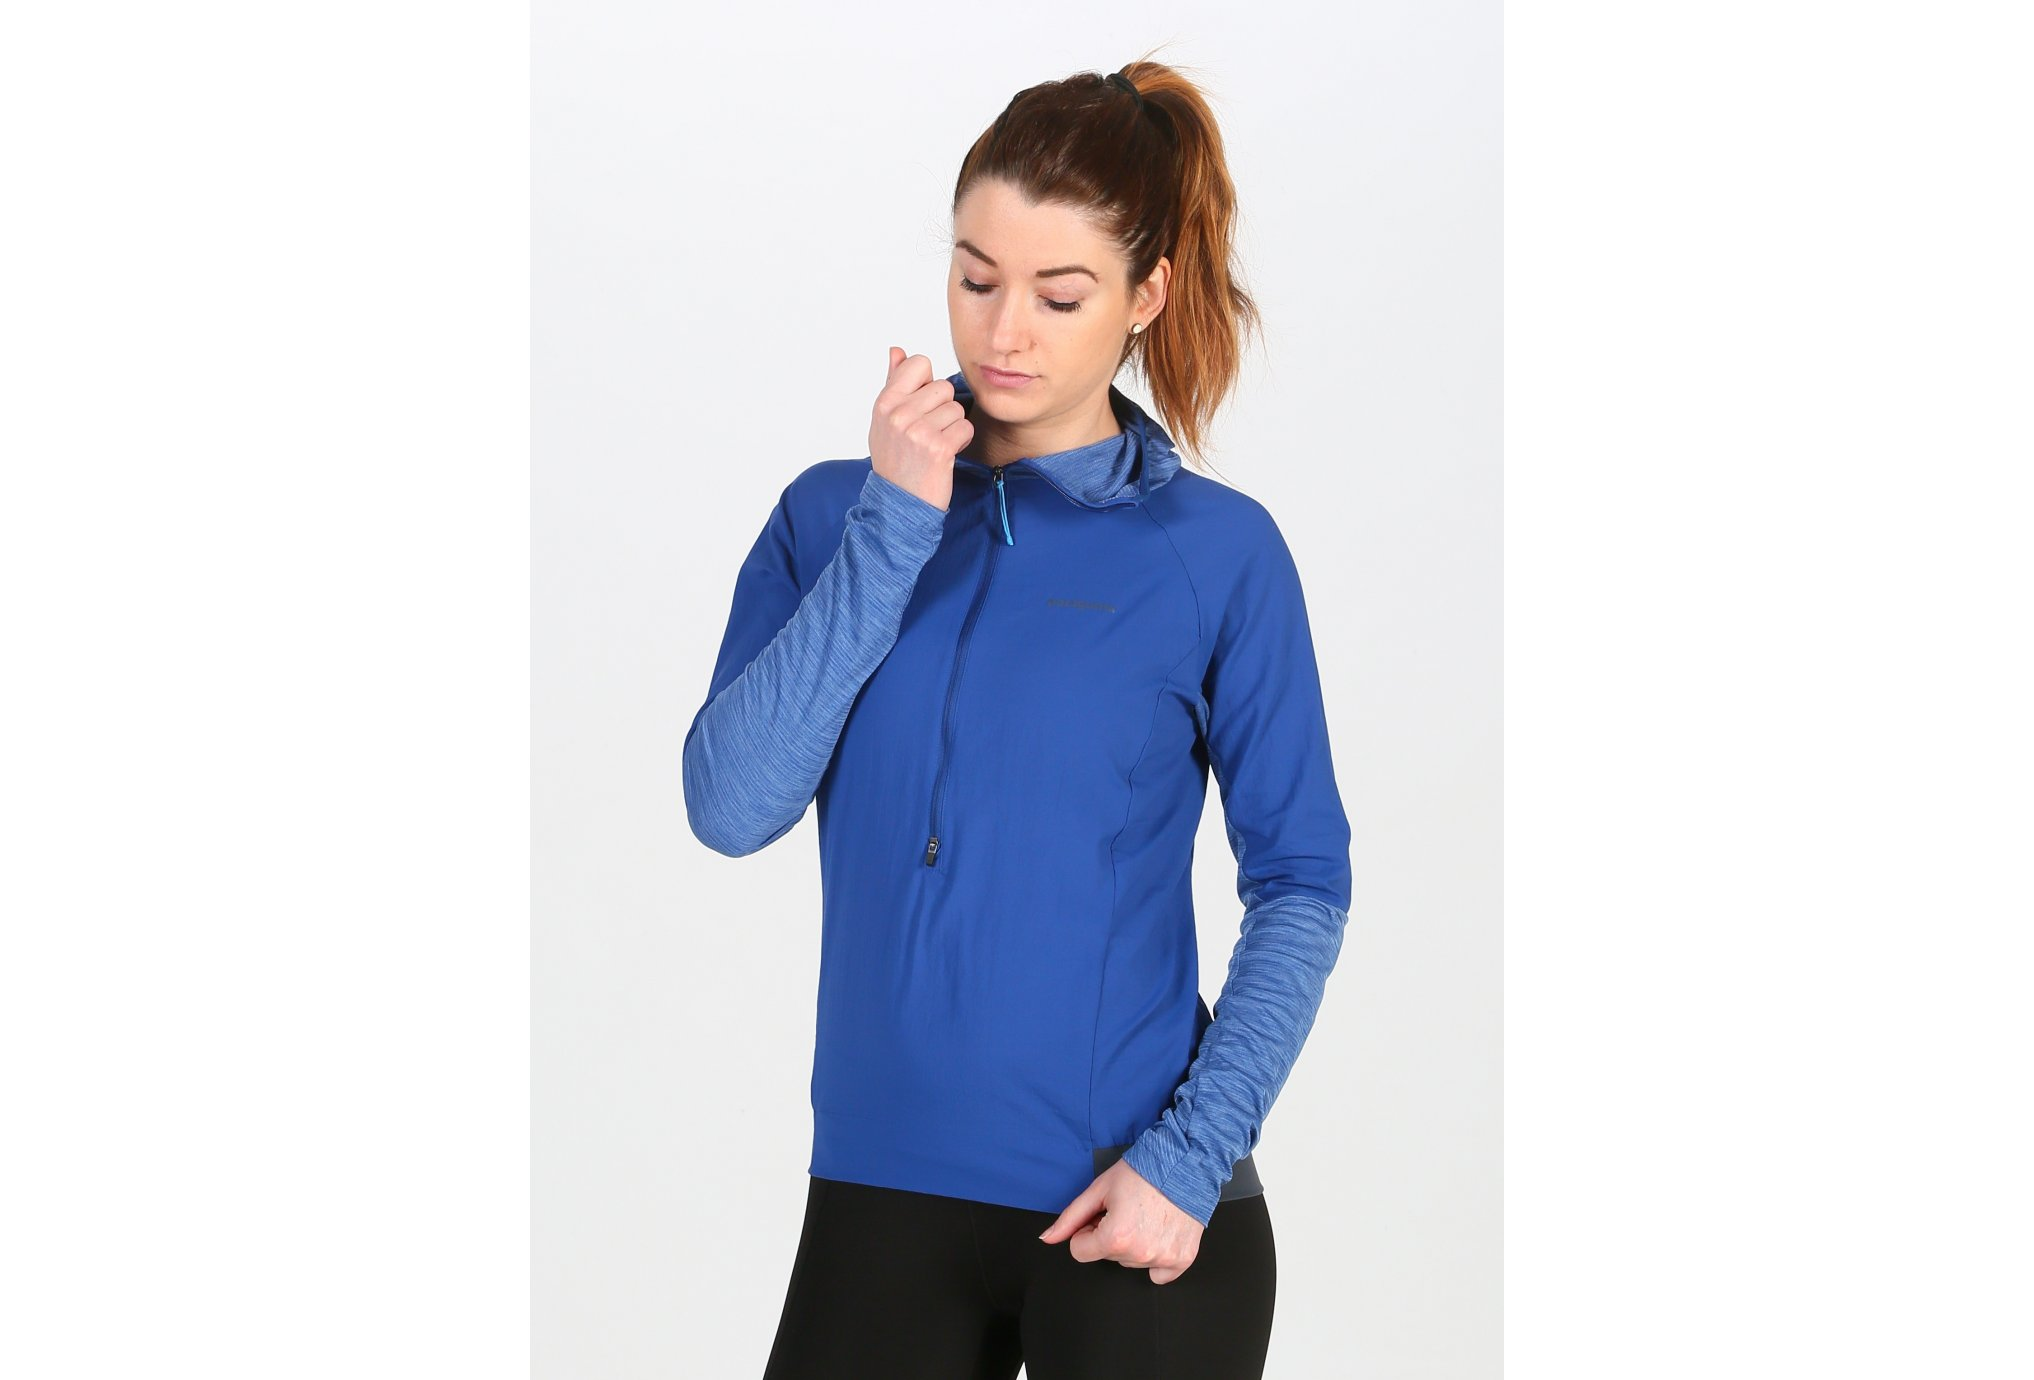 Patagonia Airshed Pro W vêtement running femme